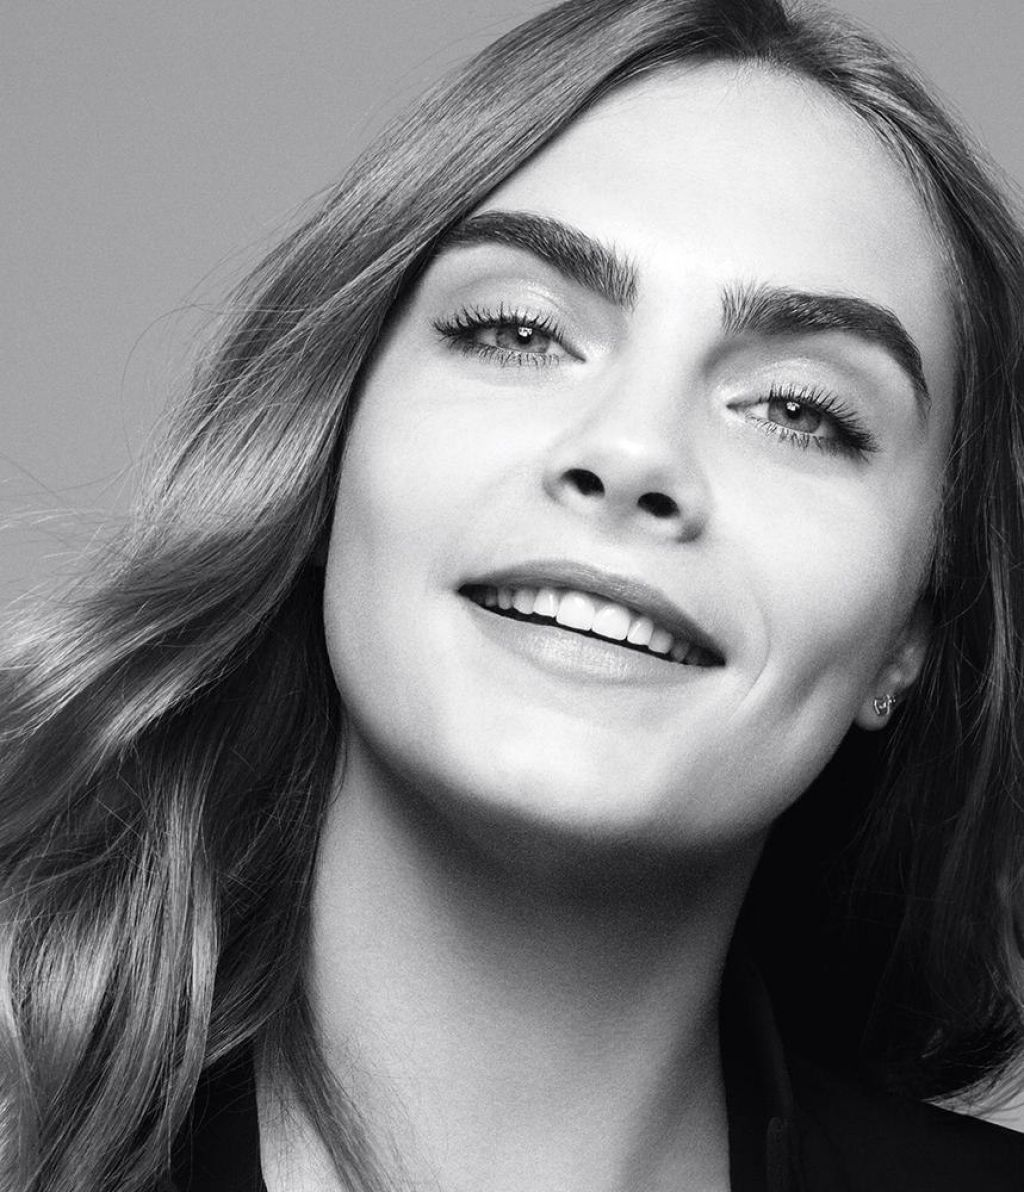 Cara Delevingne Photoshoot For Wsj June 2015 Issue